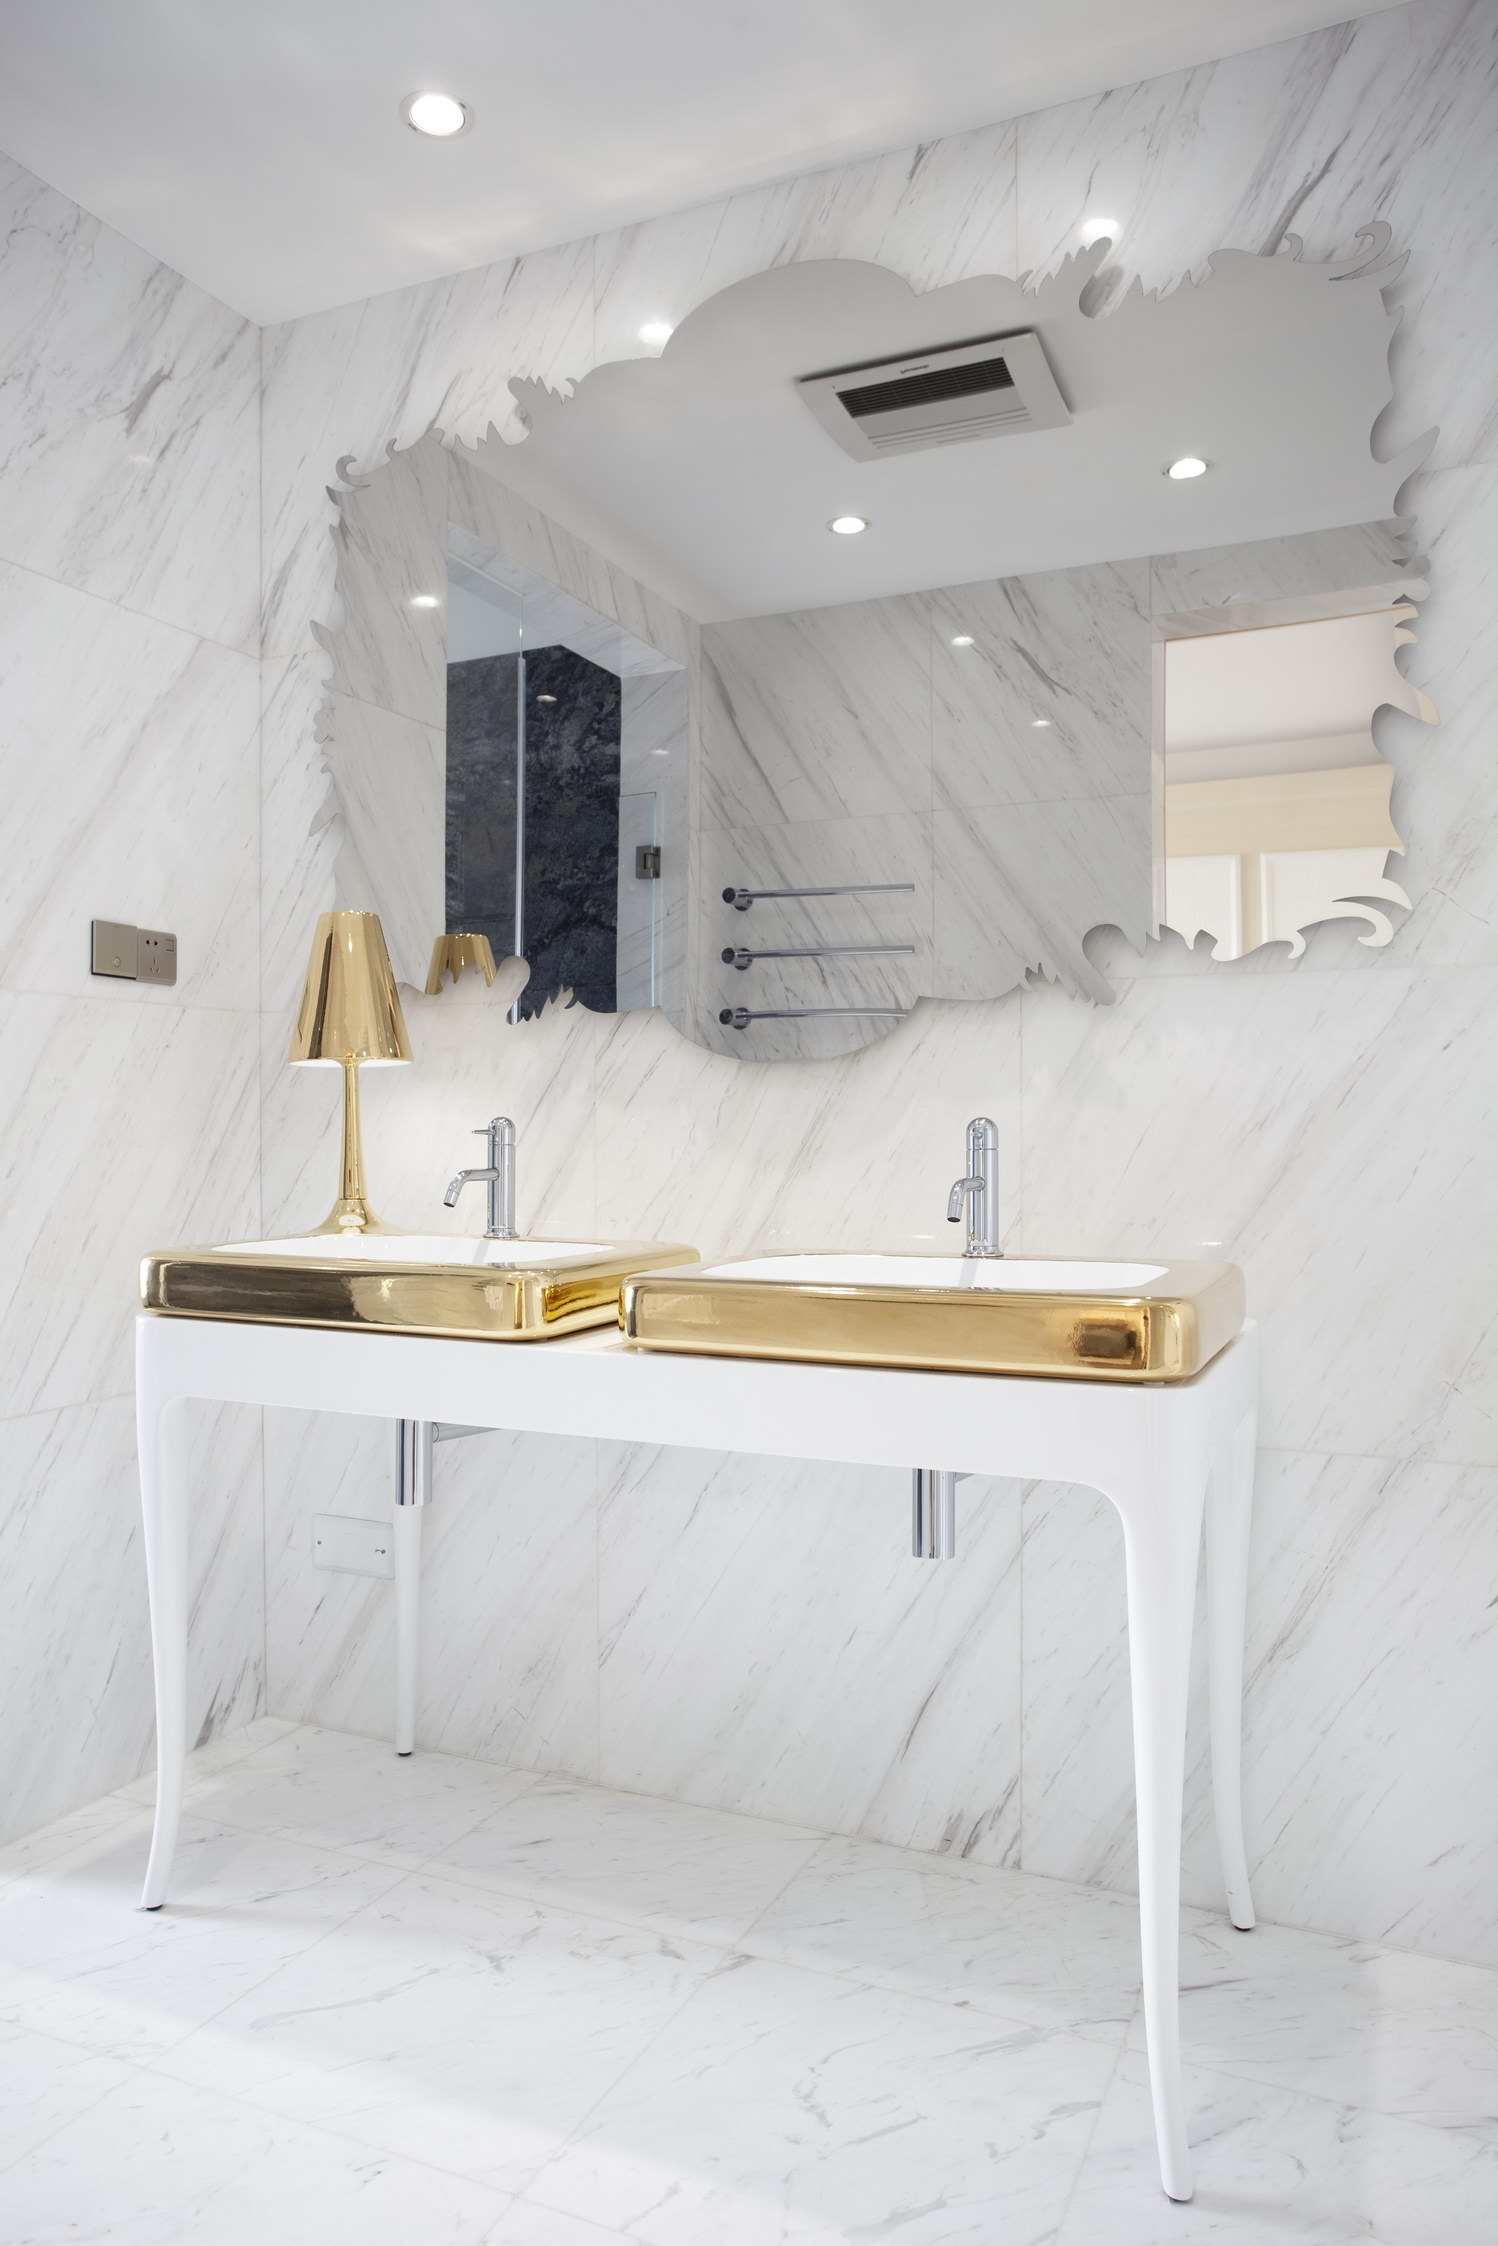 MASTER BATHROOM The gold and white marble design by Hayon for Bisazza creates a striking contrast between the two areas of the bathroom